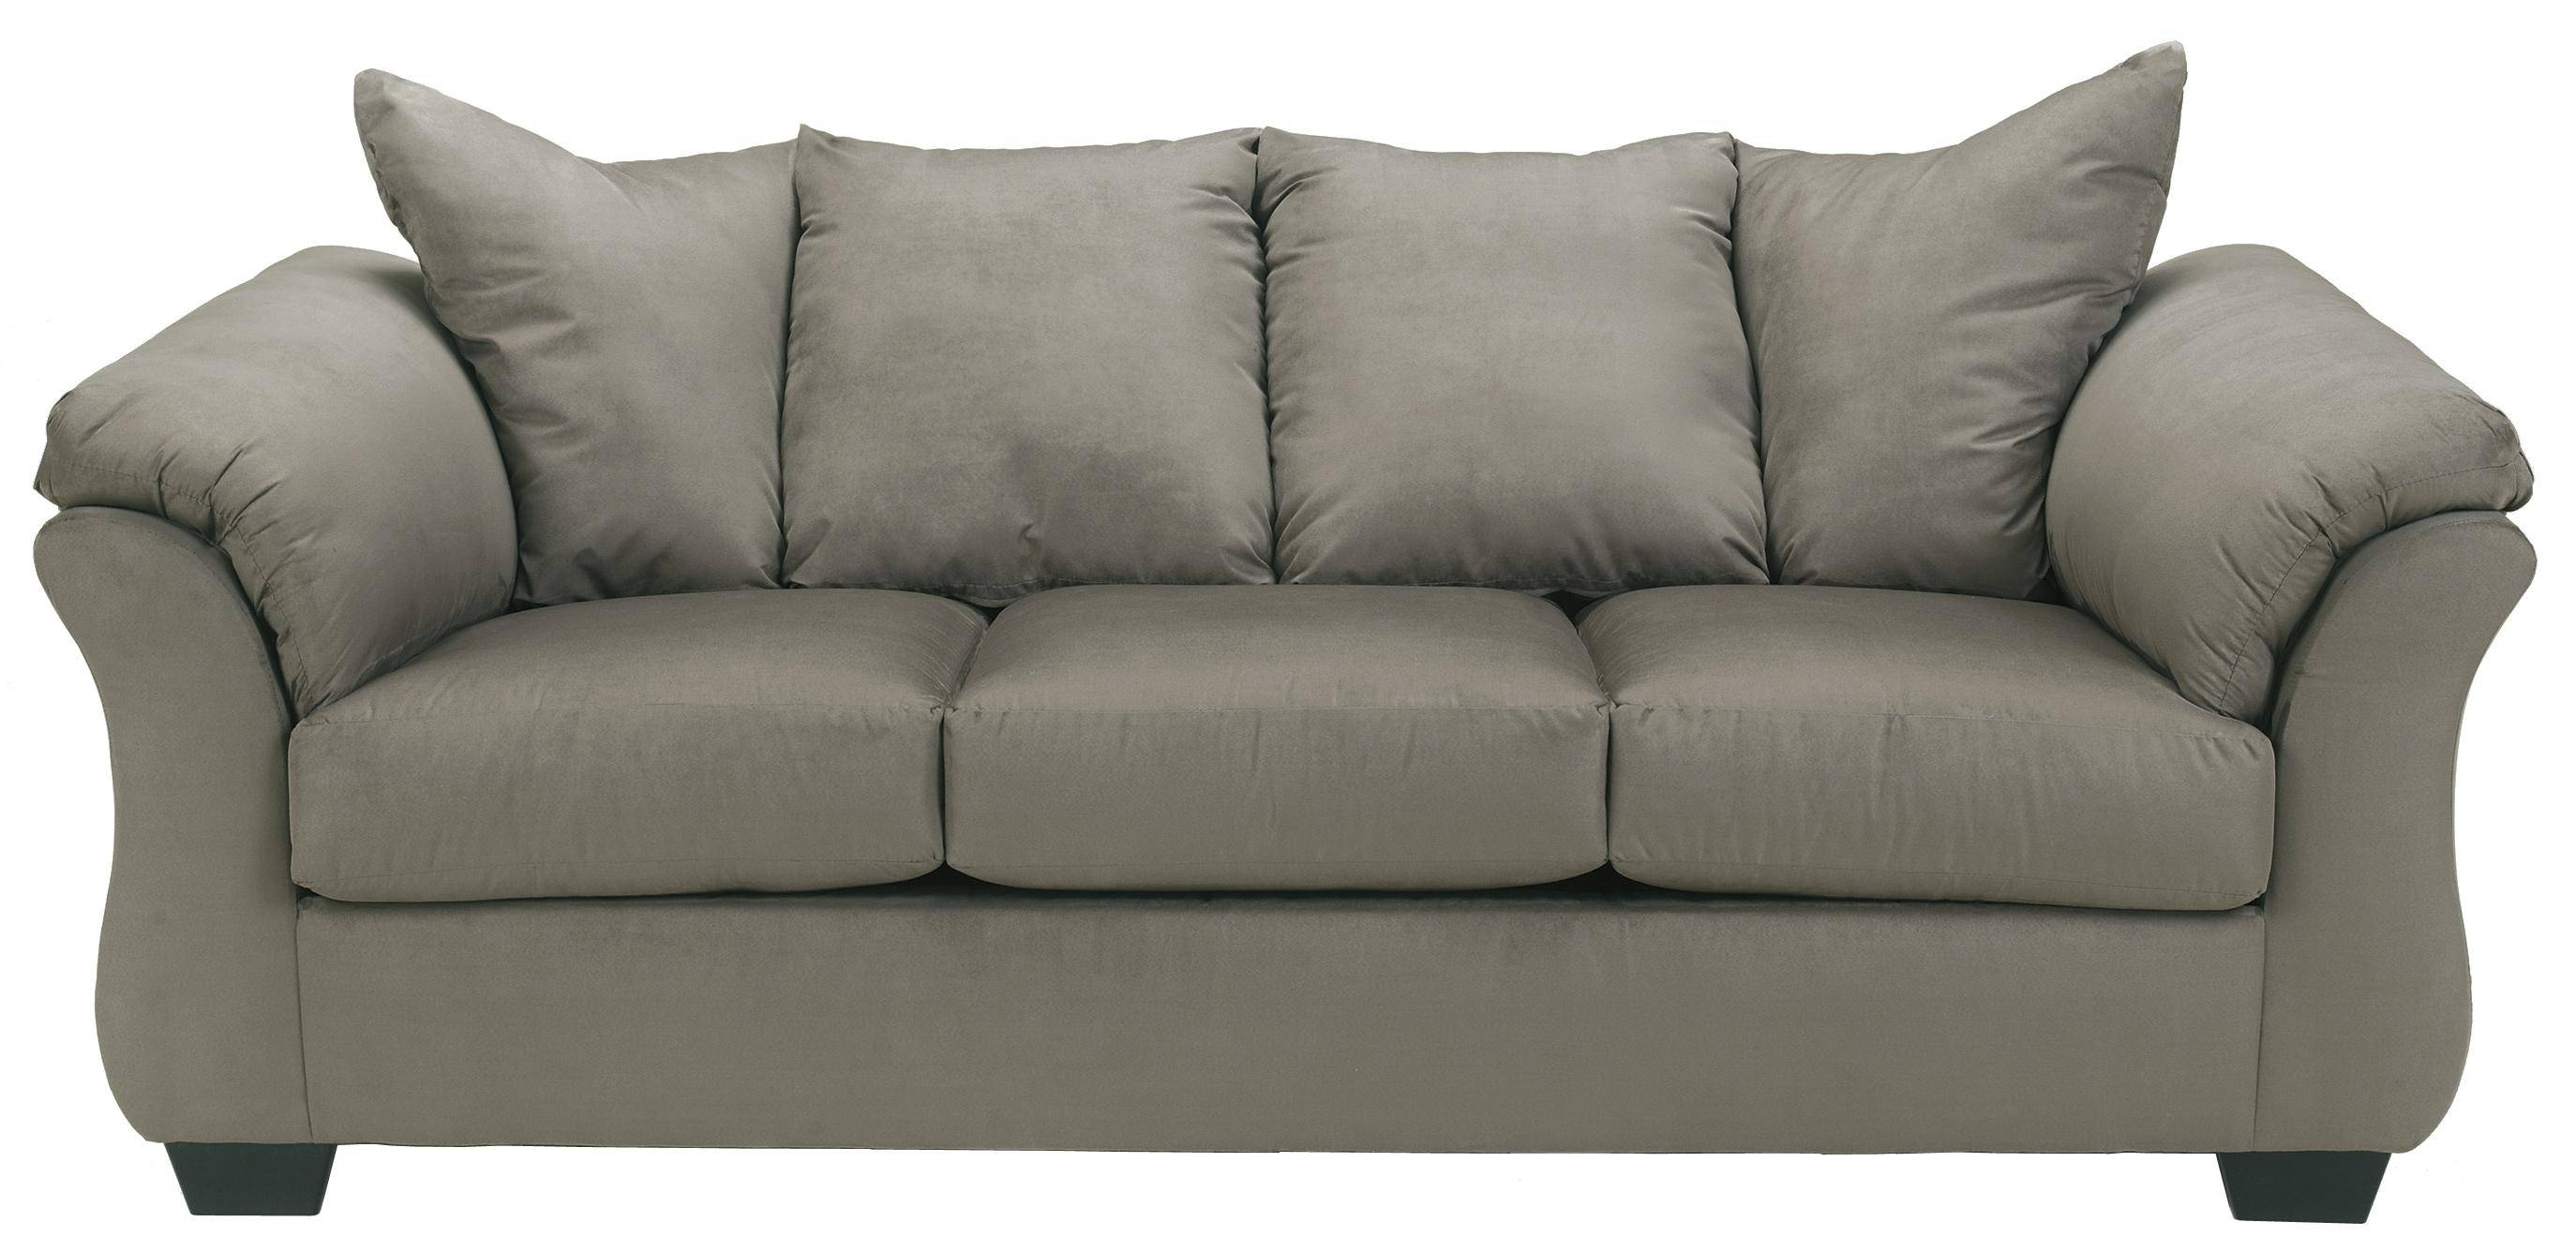 Signature Designashley Darcy – Cobblestone Contemporary Full In Cushion Sofa Beds (View 19 of 30)